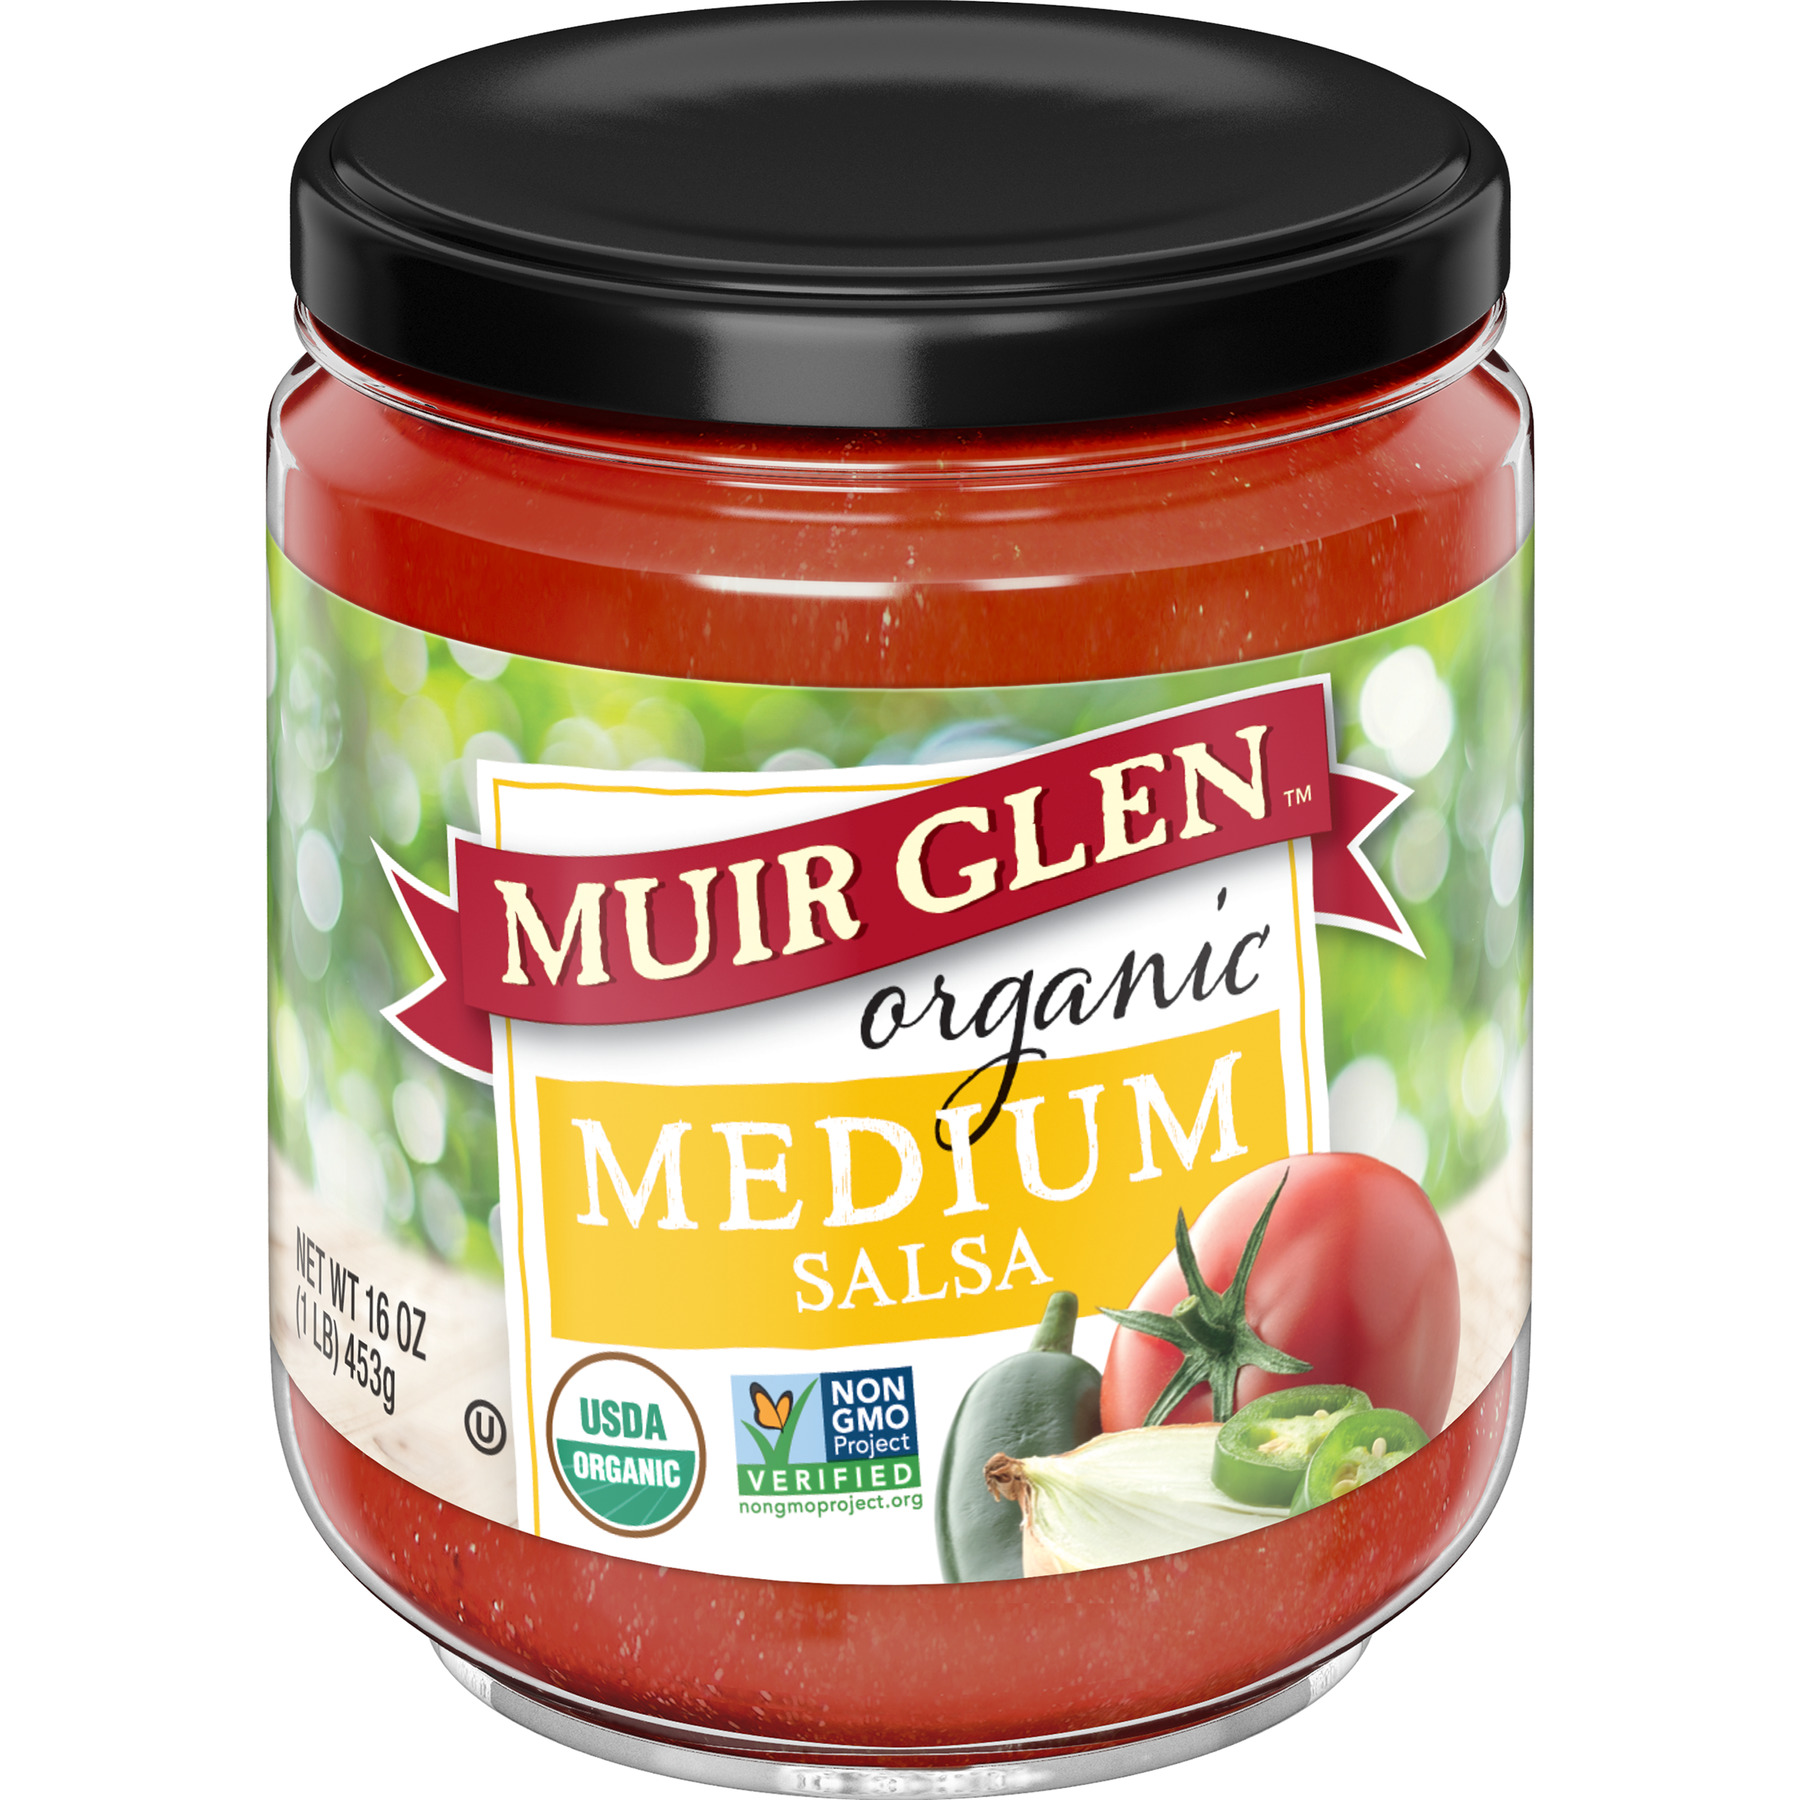 Muir Glen Organic Medium Salsa, 16 oz Can